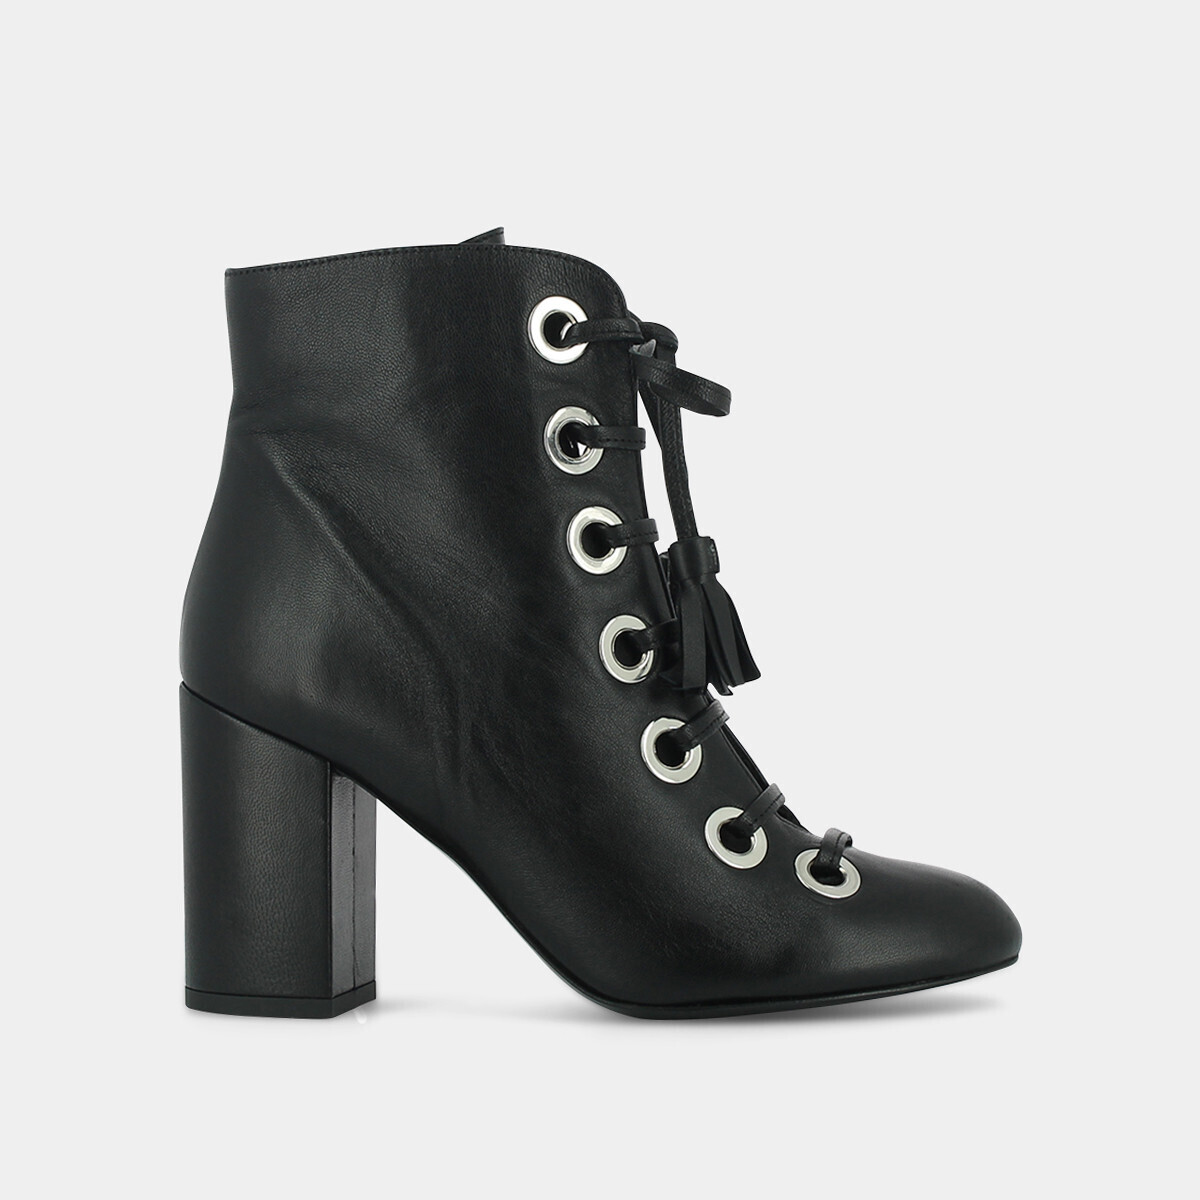 High heeled lace up boots with silver eyelets in black leather - Jonak noir